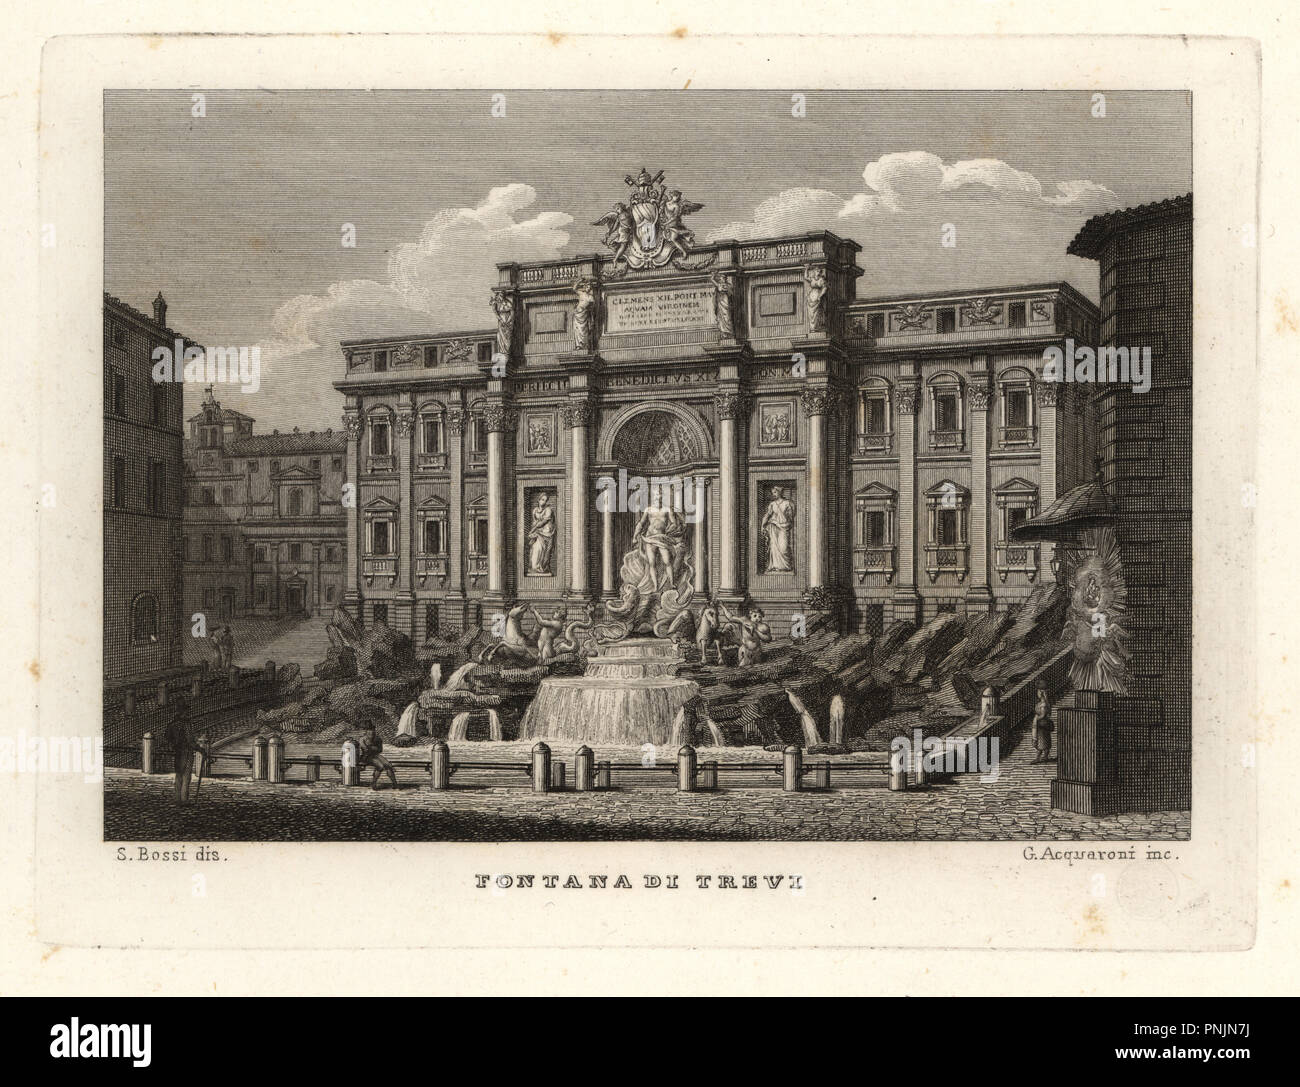 View of the Trevi Fountain, Fontana di Trevi, Rome. Copperplate engraving by G. Acquaroni after an illustration by Sylvestro Bossi from Achille Parboni's New Collection of Principal Views Ancient and Modern of the City of Rome, 1830. - Stock Image